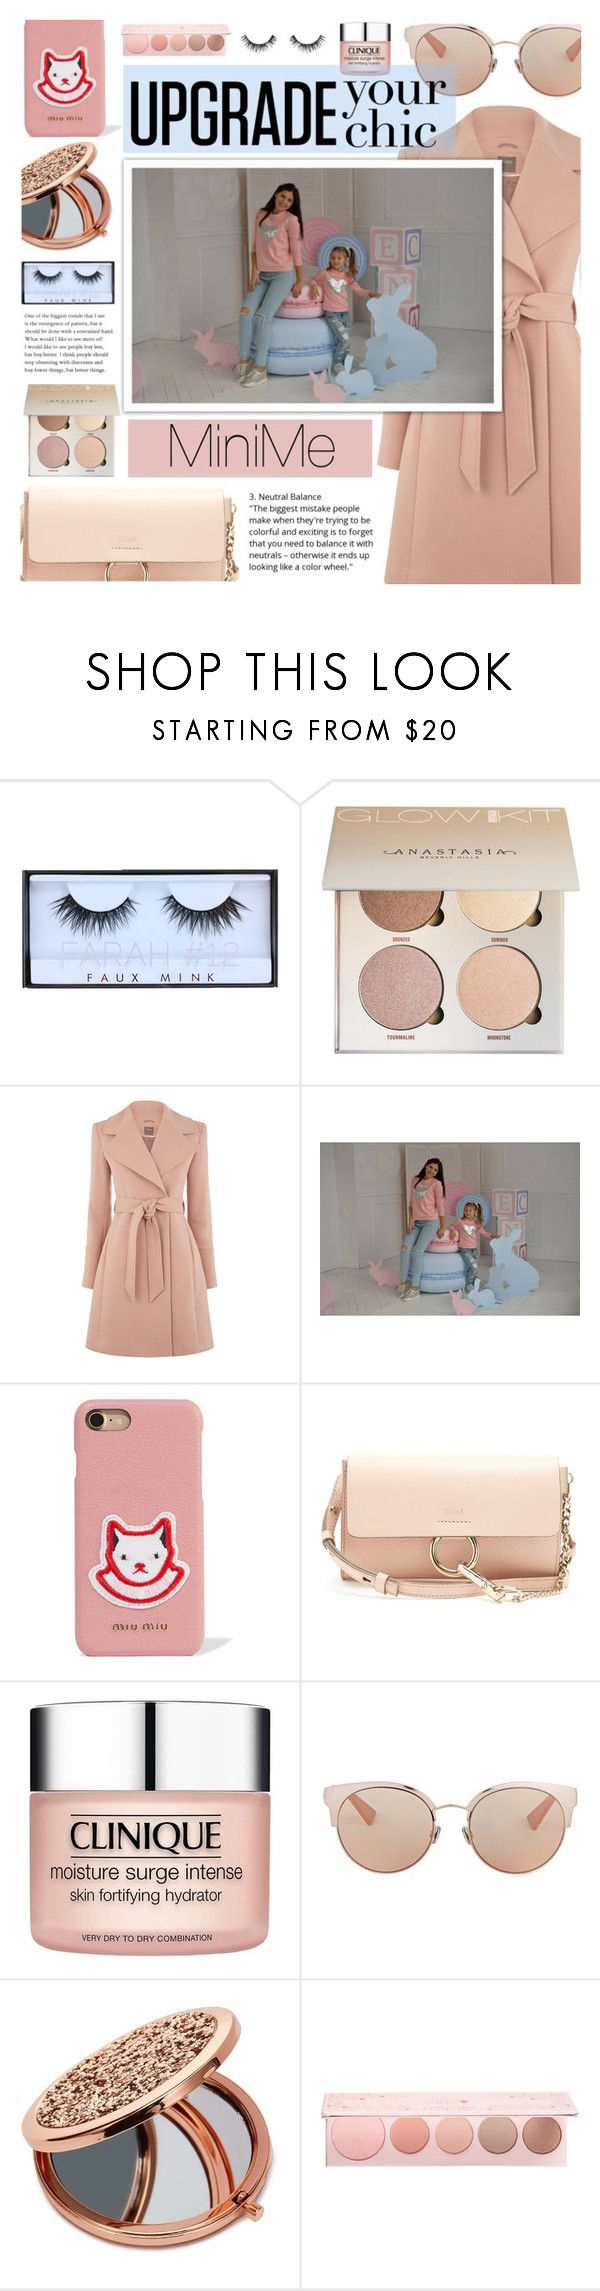 """MiniMe Fashion"" by dora04 ❤ liked on Polyvore featuring Miu Miu, Chloé, Clinique, Christian Dior, Miss Selfridge, 100% Pure and Velour Lashes"